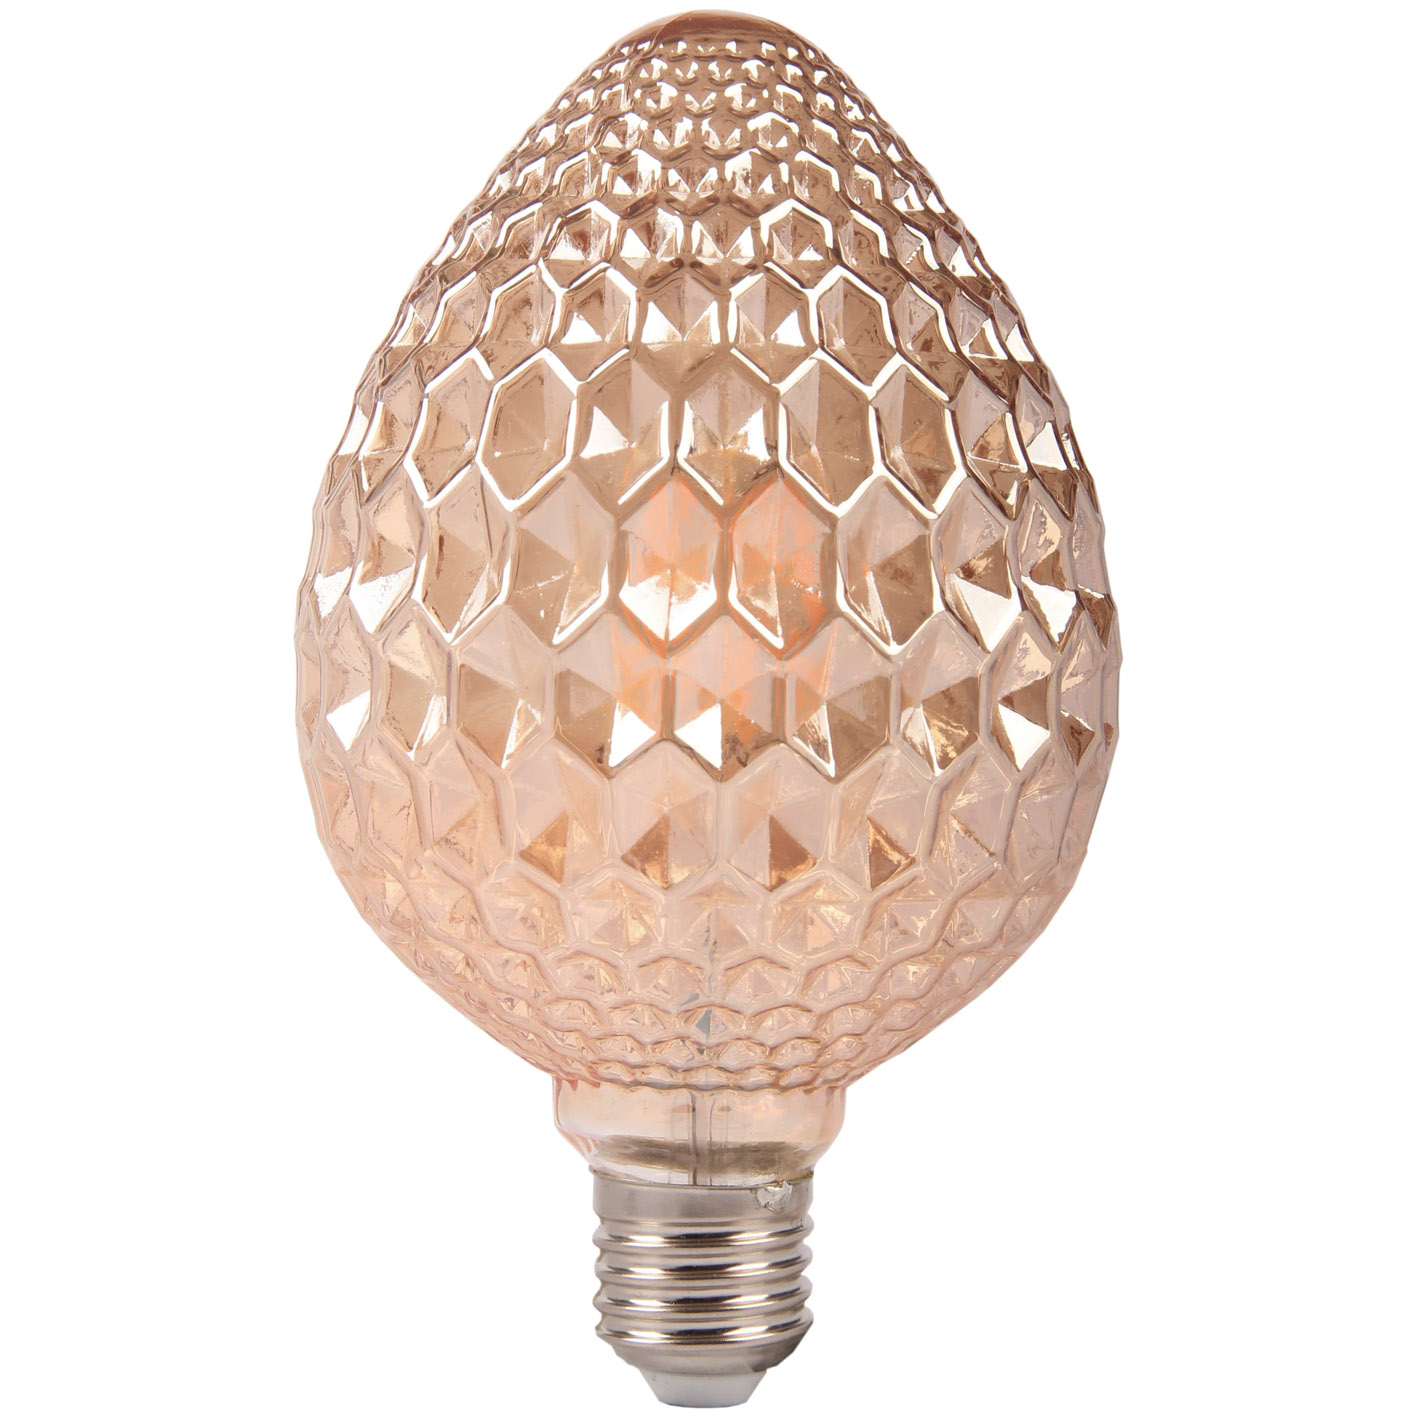 Lampadina LED filamento E27 6W ambrato elegante Strawberry Lamp